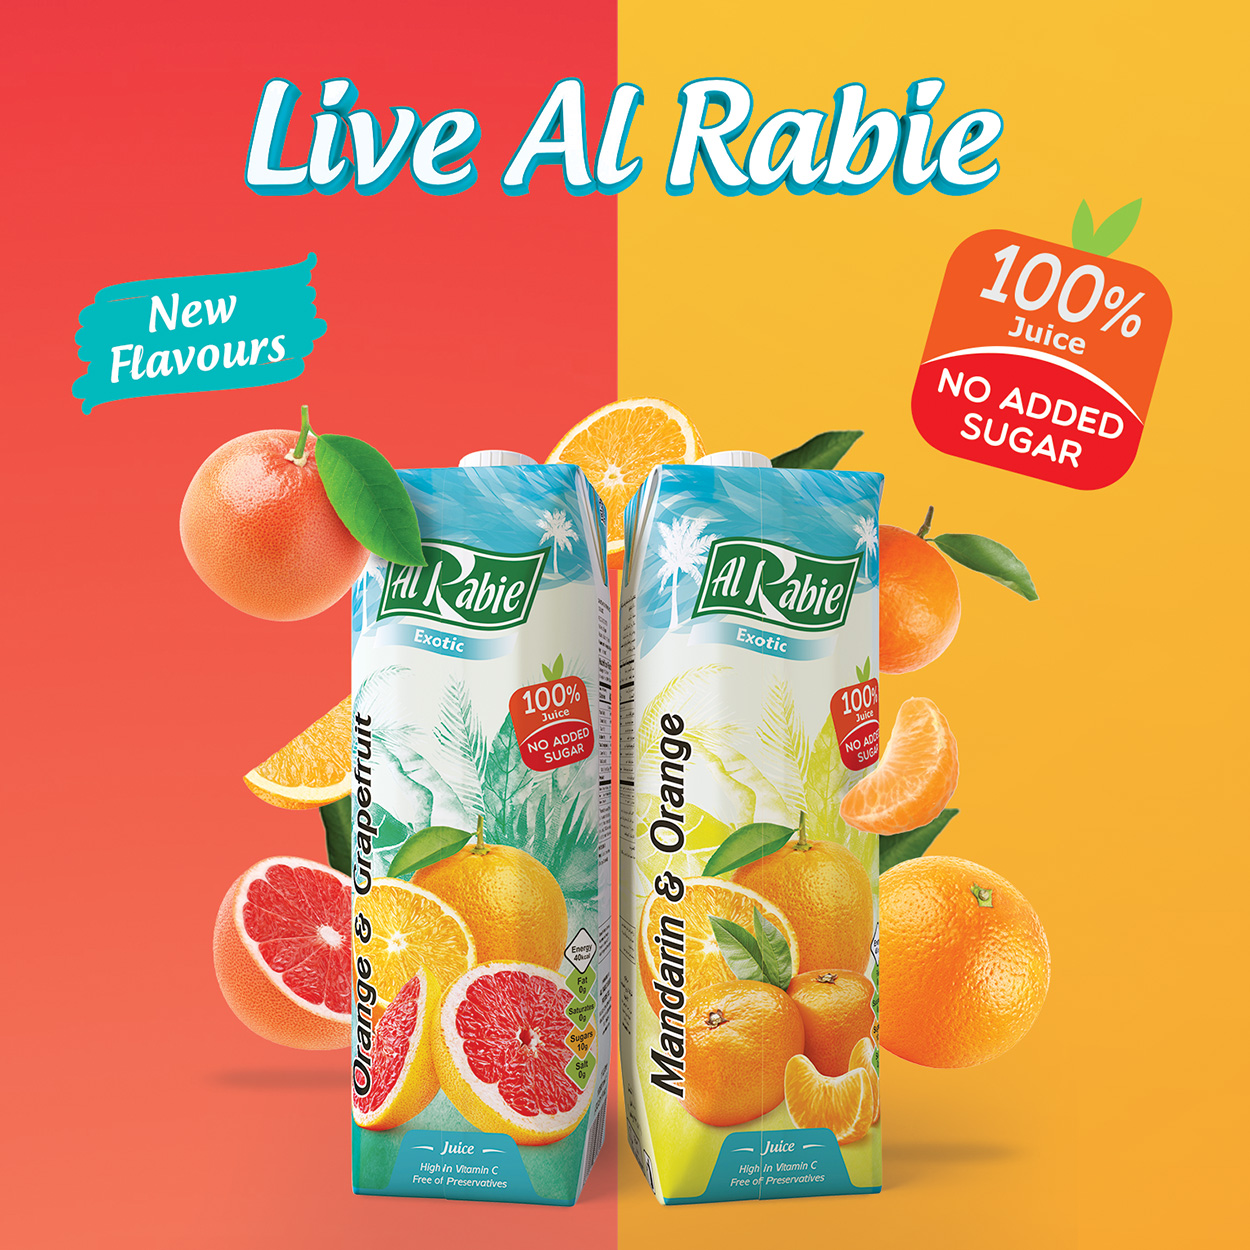 Discover the Great Taste of the New Citrus Flavours